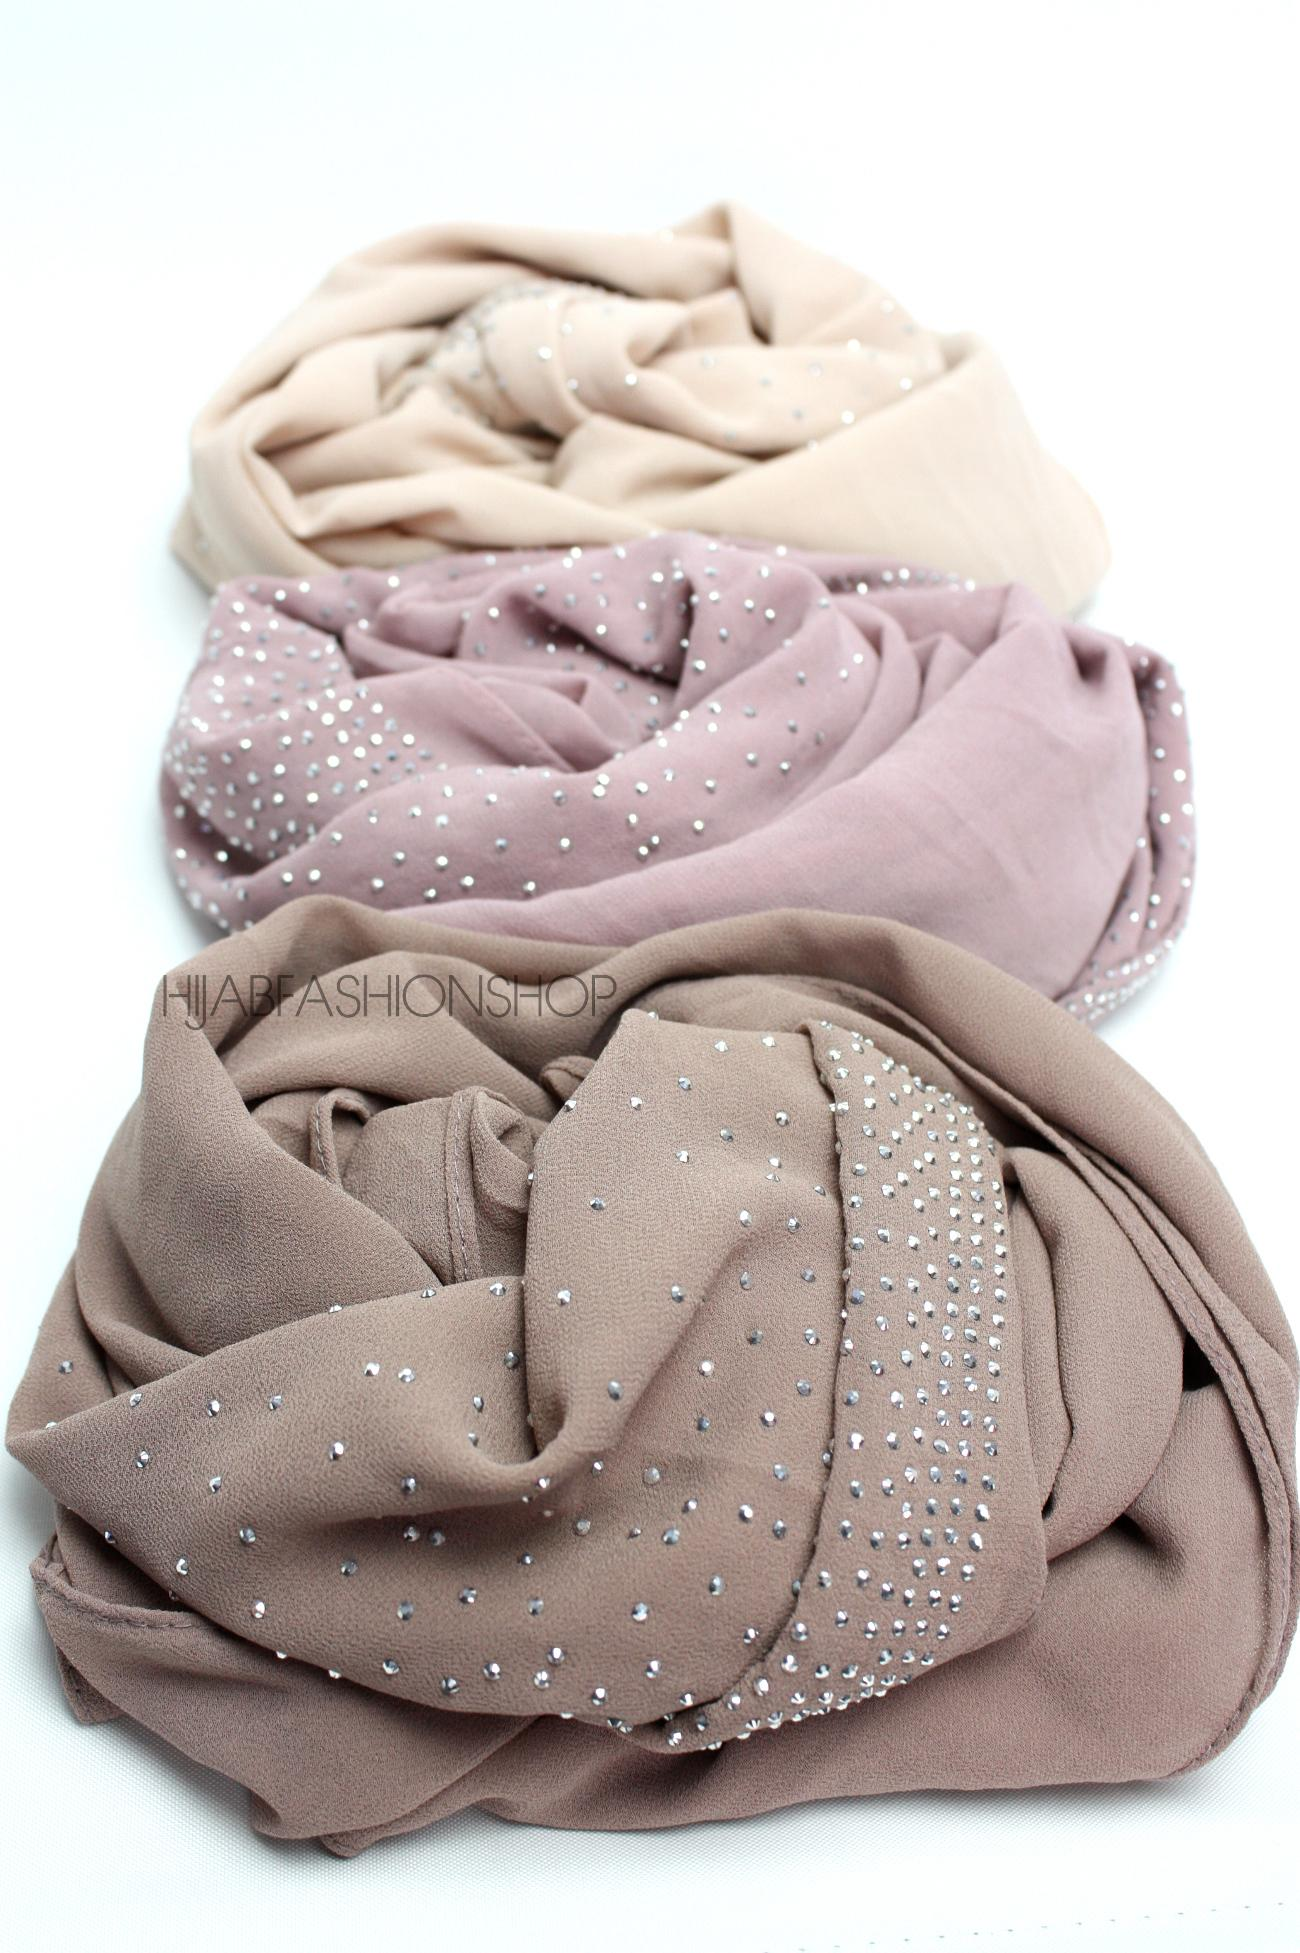 Light cappuccino studded chiffon hijab 3